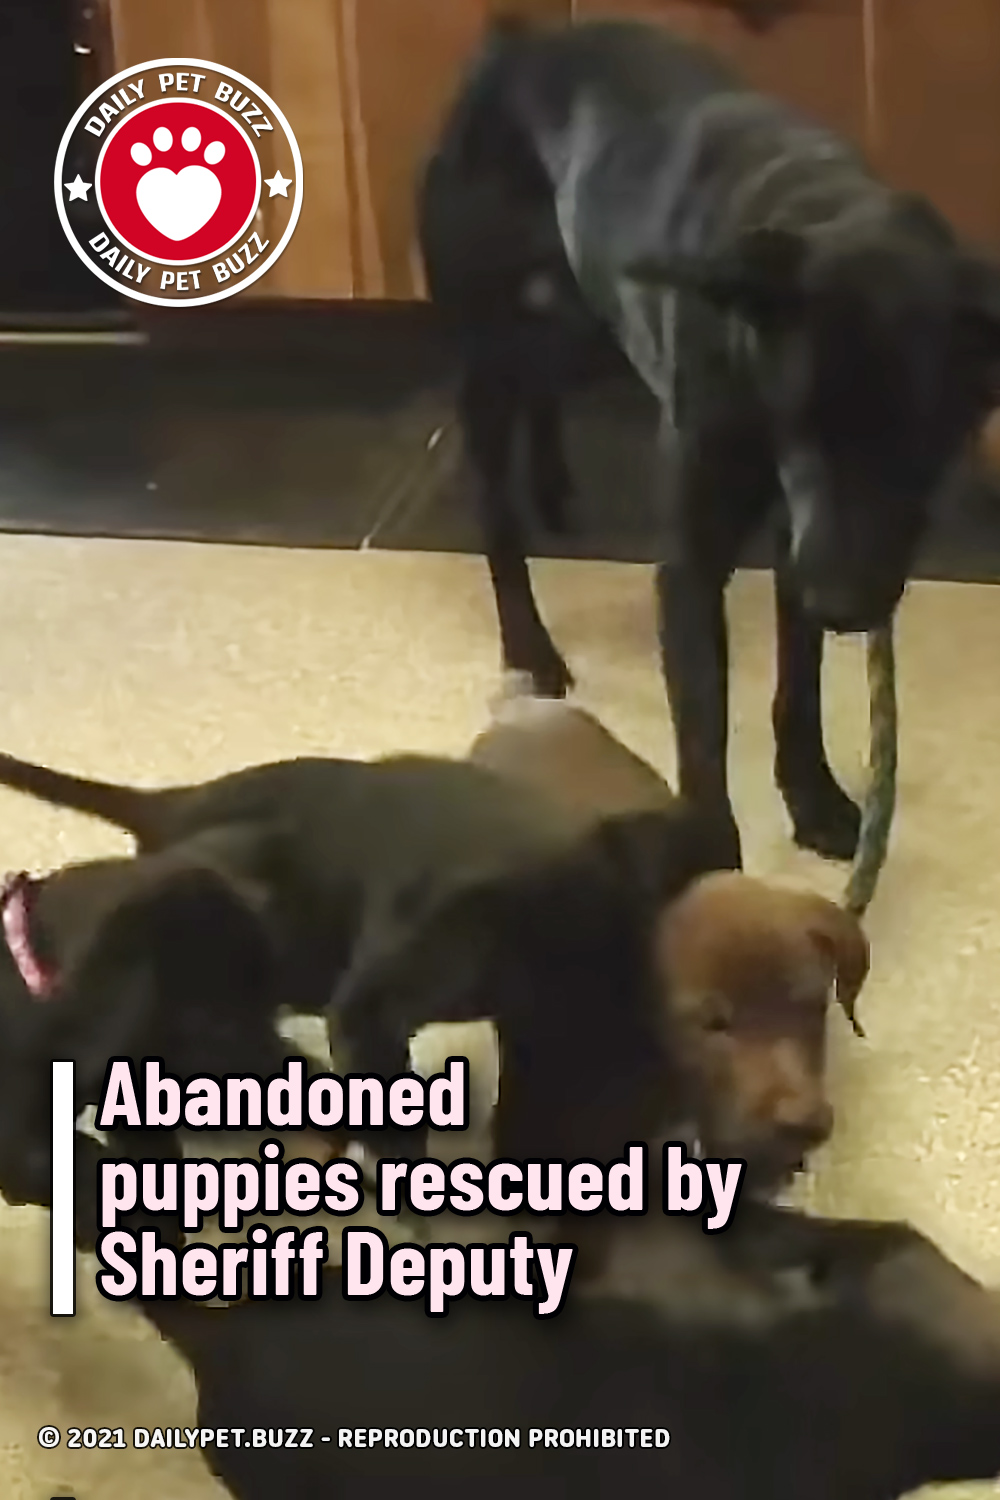 Abandoned puppies rescued by Sheriff Deputy